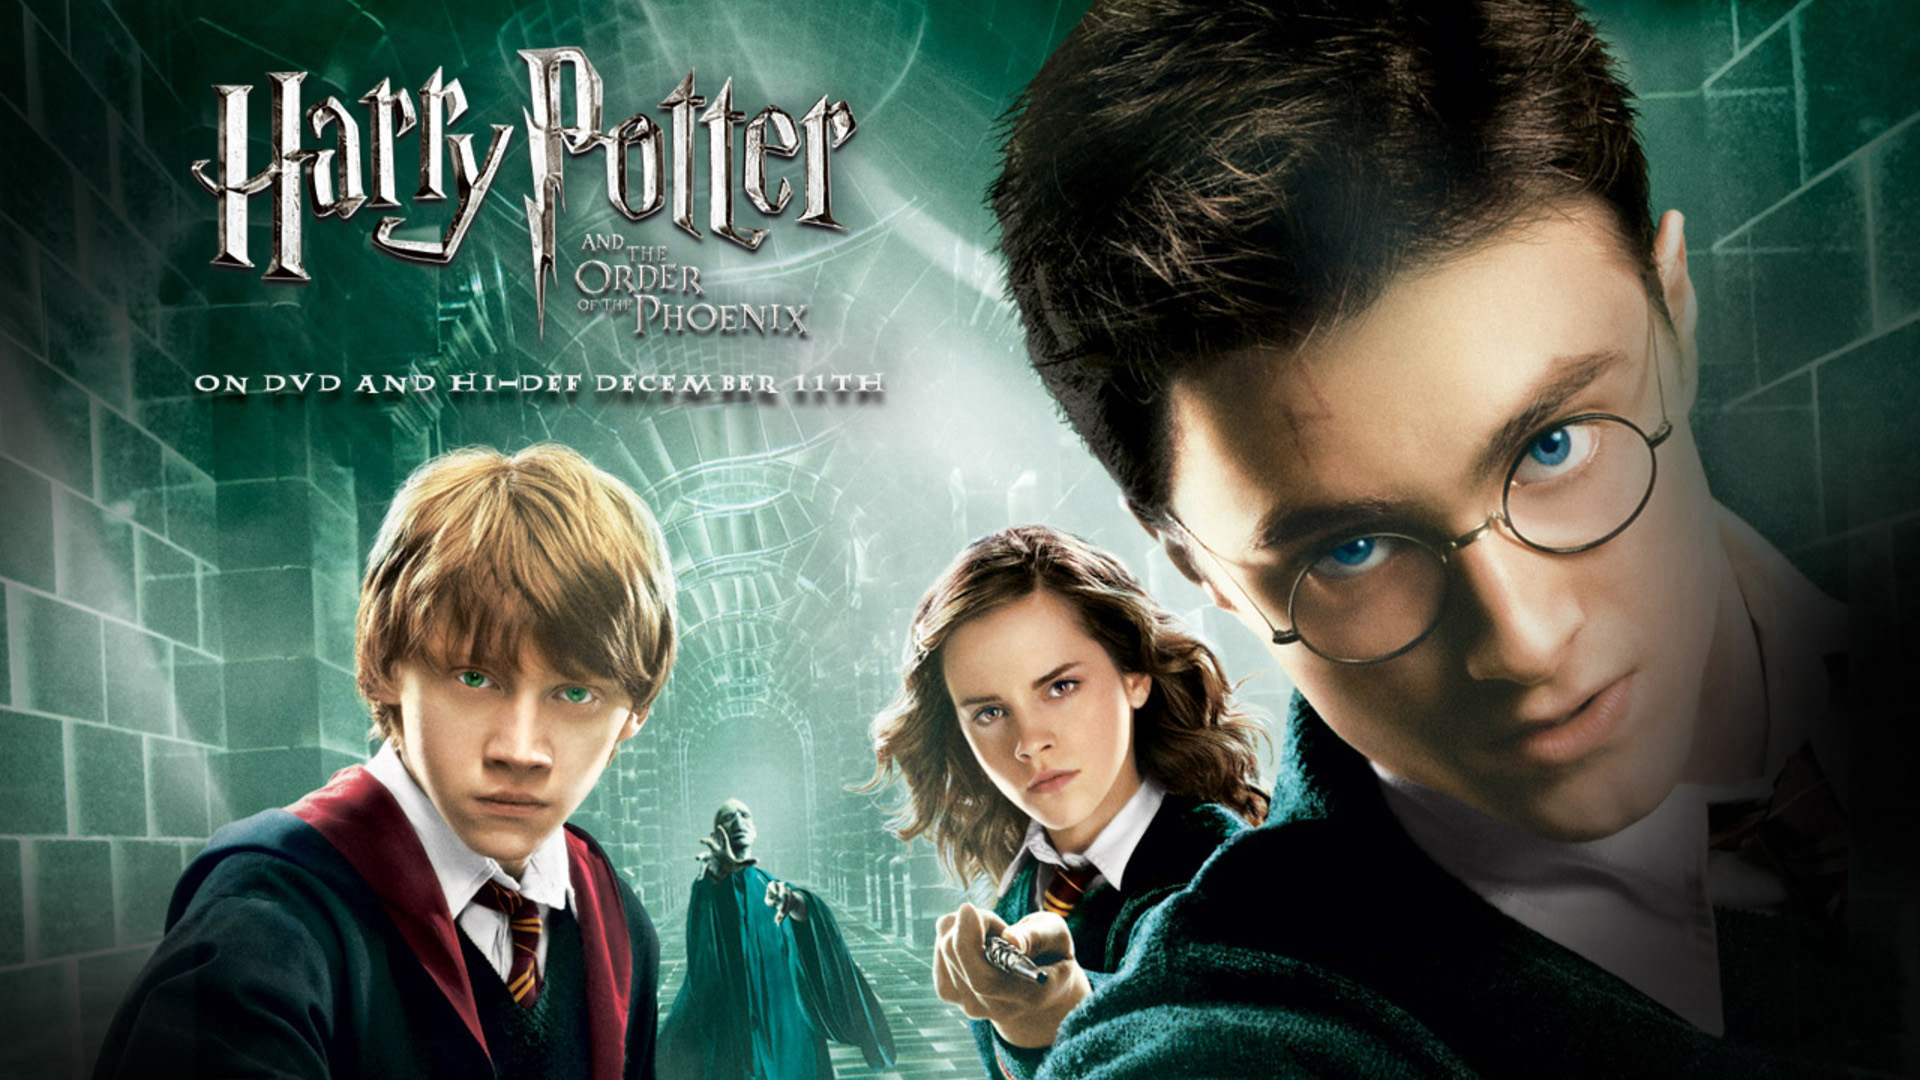 Harry potter and ginny weasley nude hot girls wallpaper - Harry potter hermione granger ron weasley ...